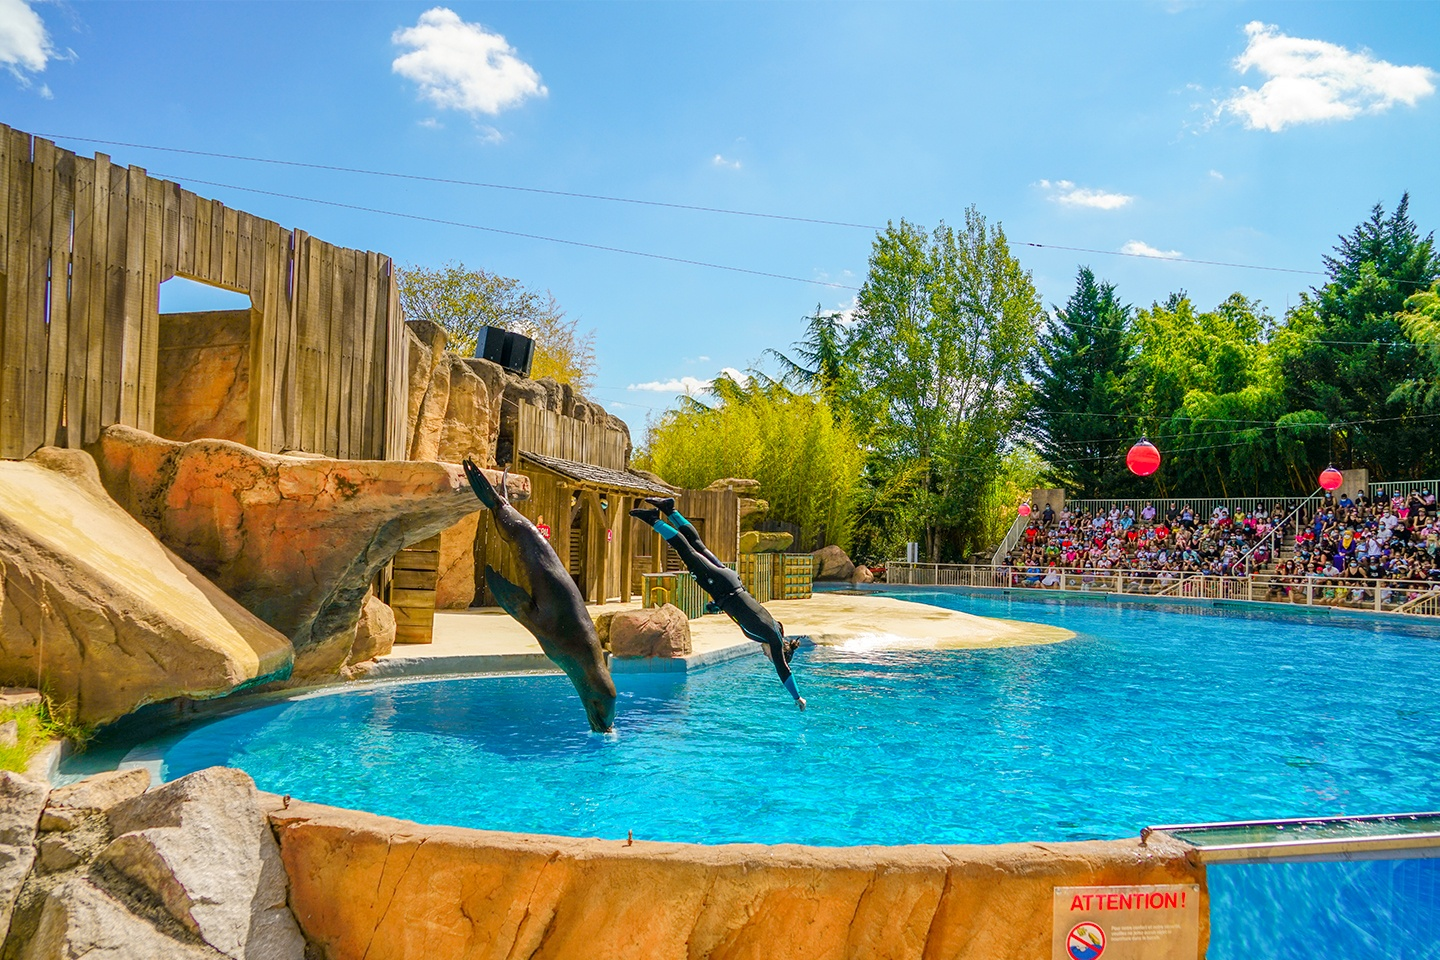 piscines-collectives-zoo